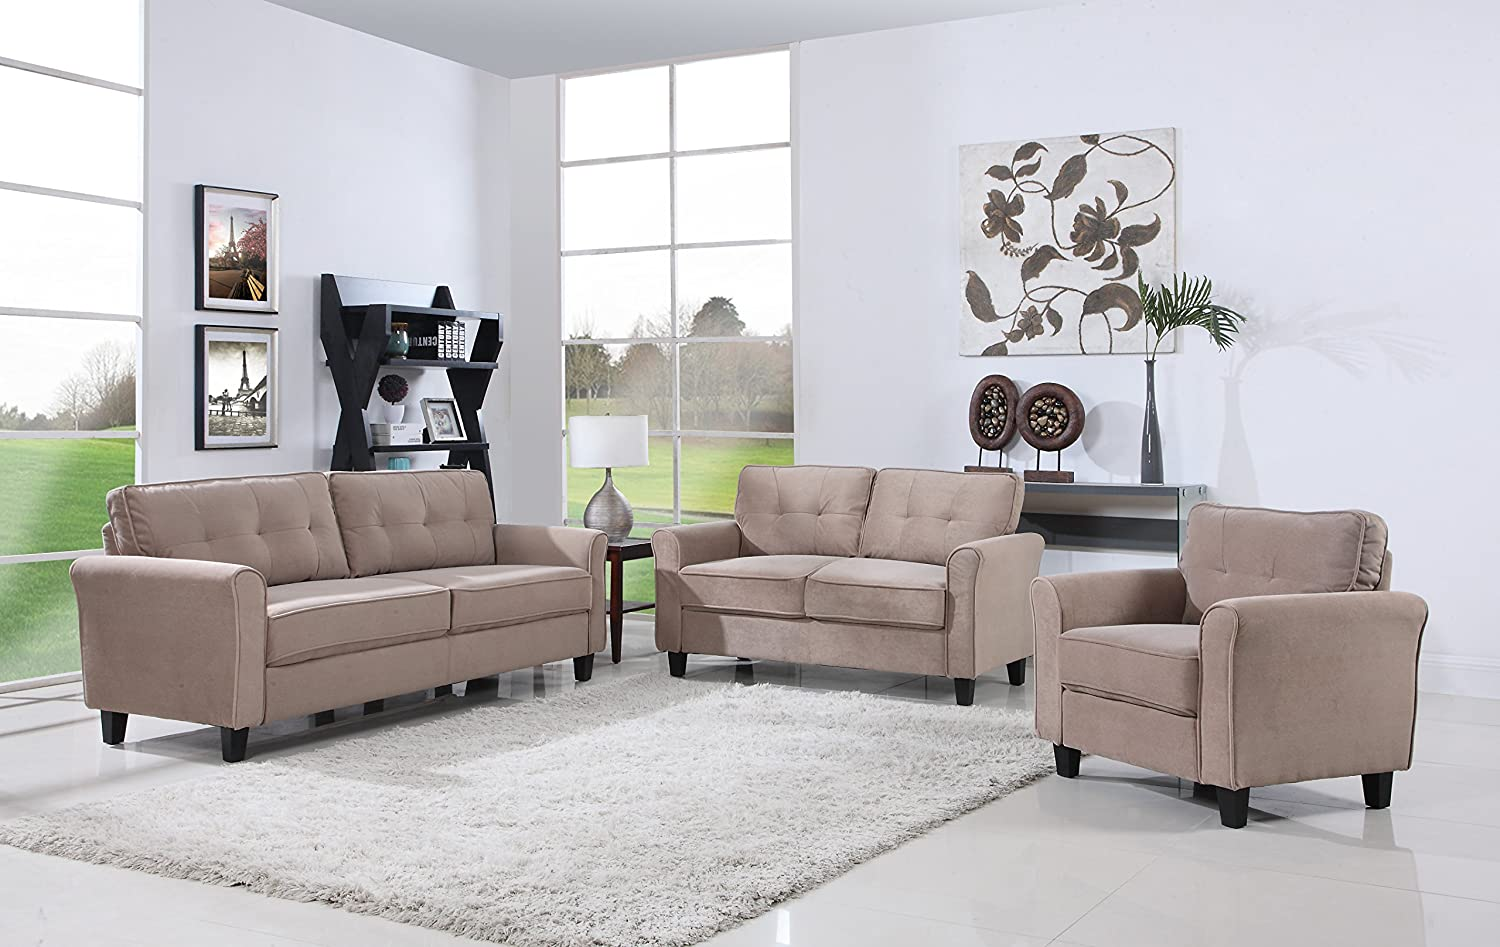 Cheap living room sets under 300 best living room sets for Cheap living room furniture sets